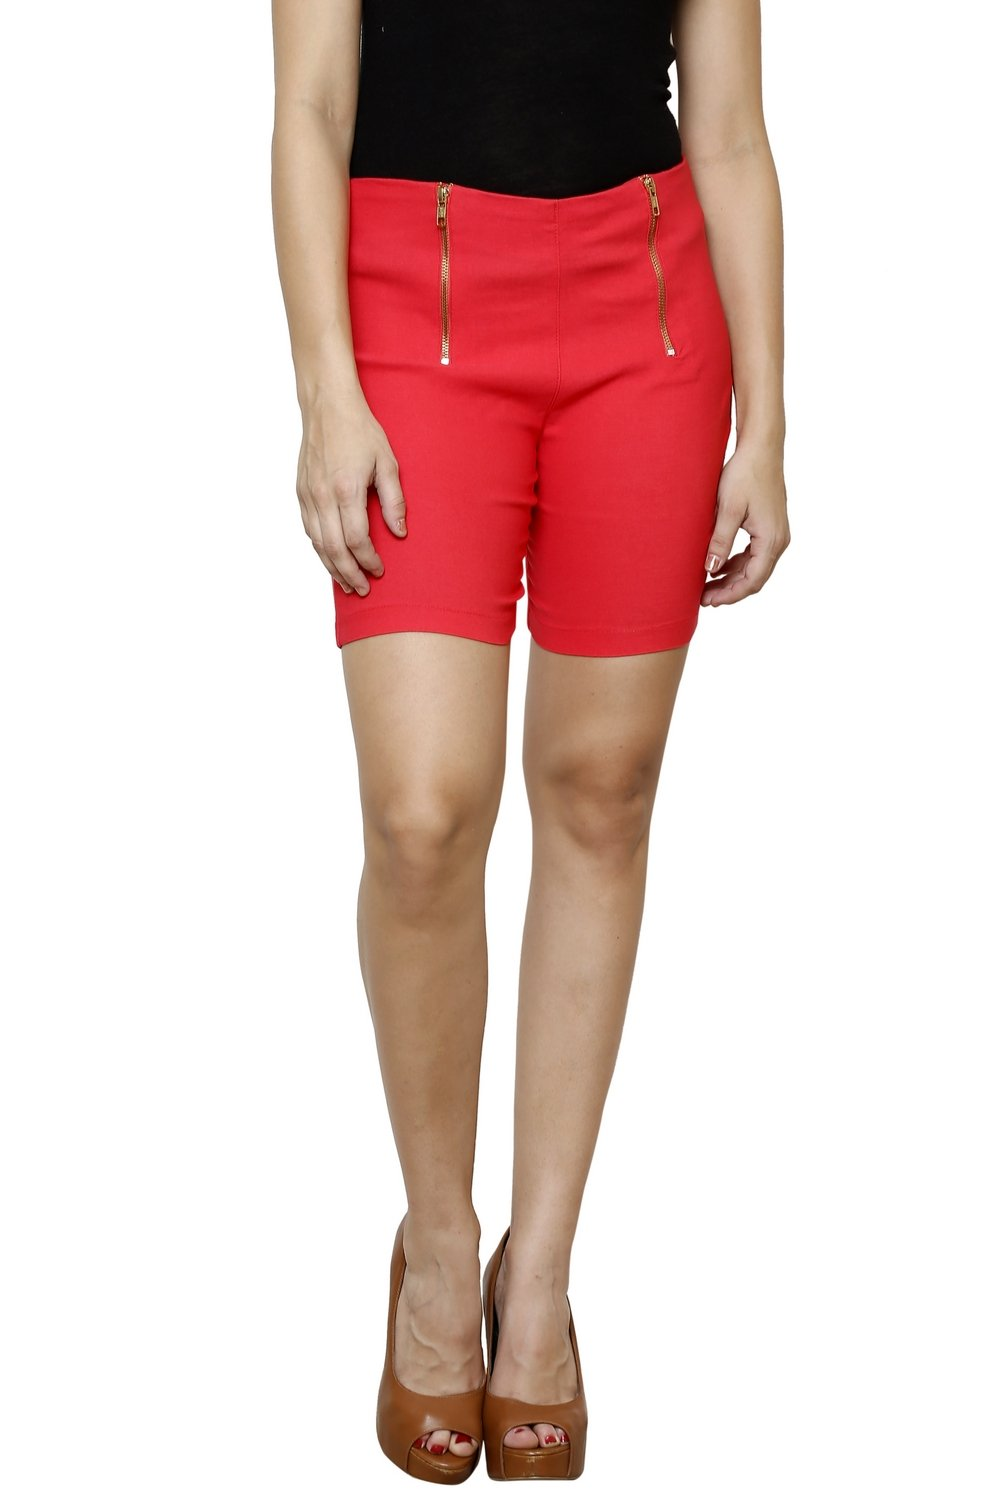 Castle Peach Double Zip Lumlum Shorts - Castle Lifestyle